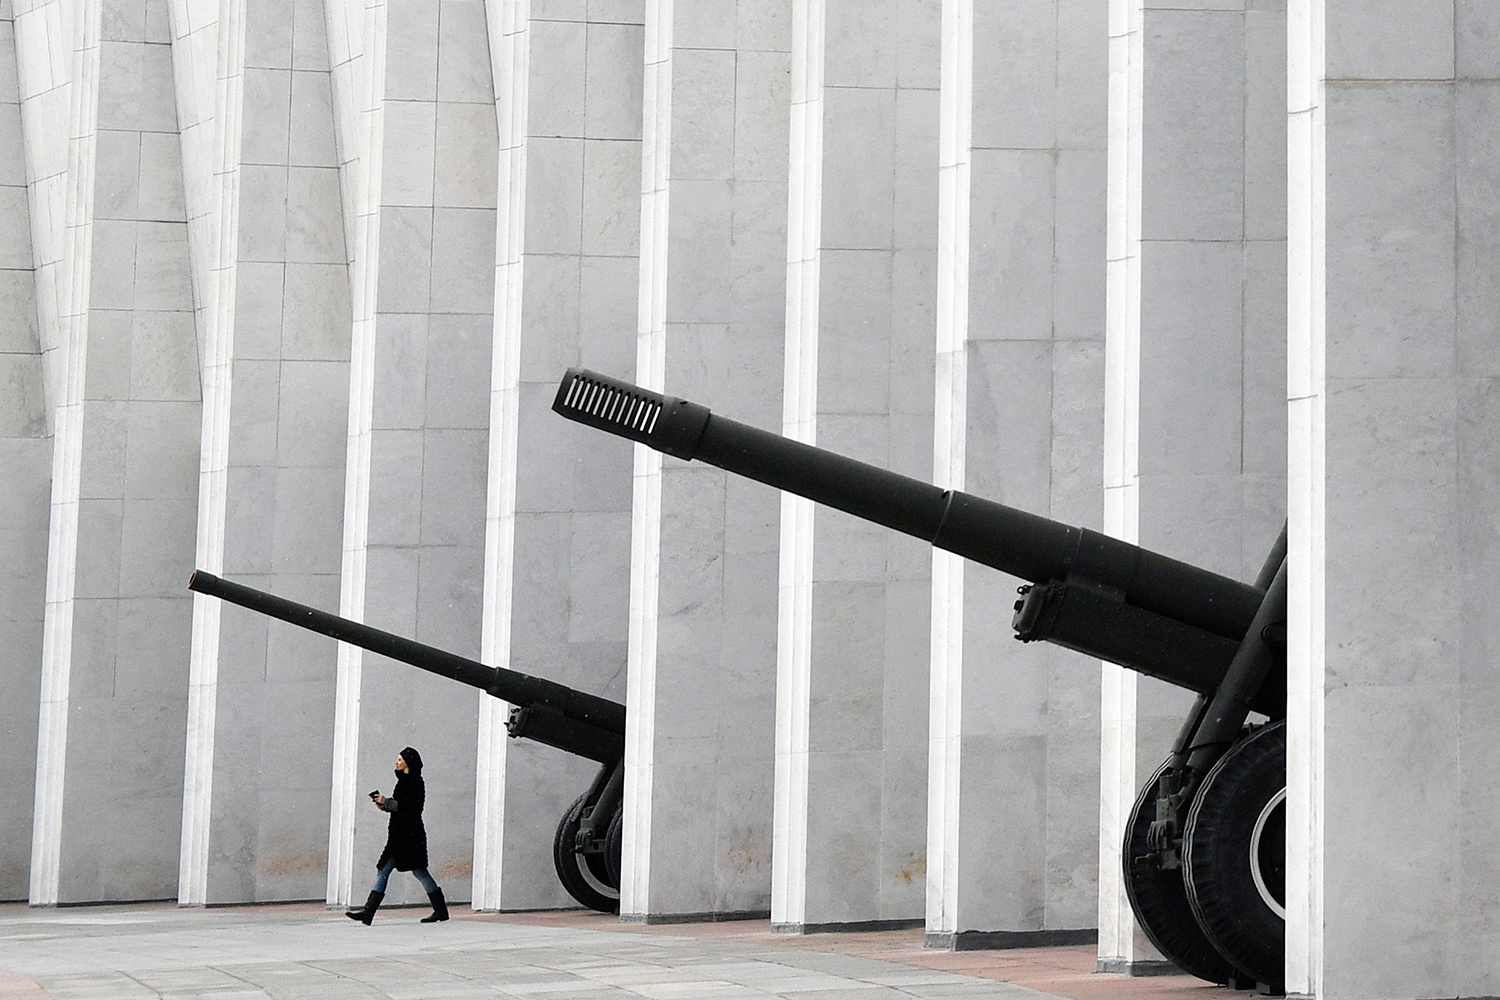 A woman walks past WWII-era artillery guns at the colonnade of the Museum of the Great Patriotic War at Poklonnaya Hill in Moscow on Oct. 31. ALEXANDER NEMENOV/AFP via Getty Images